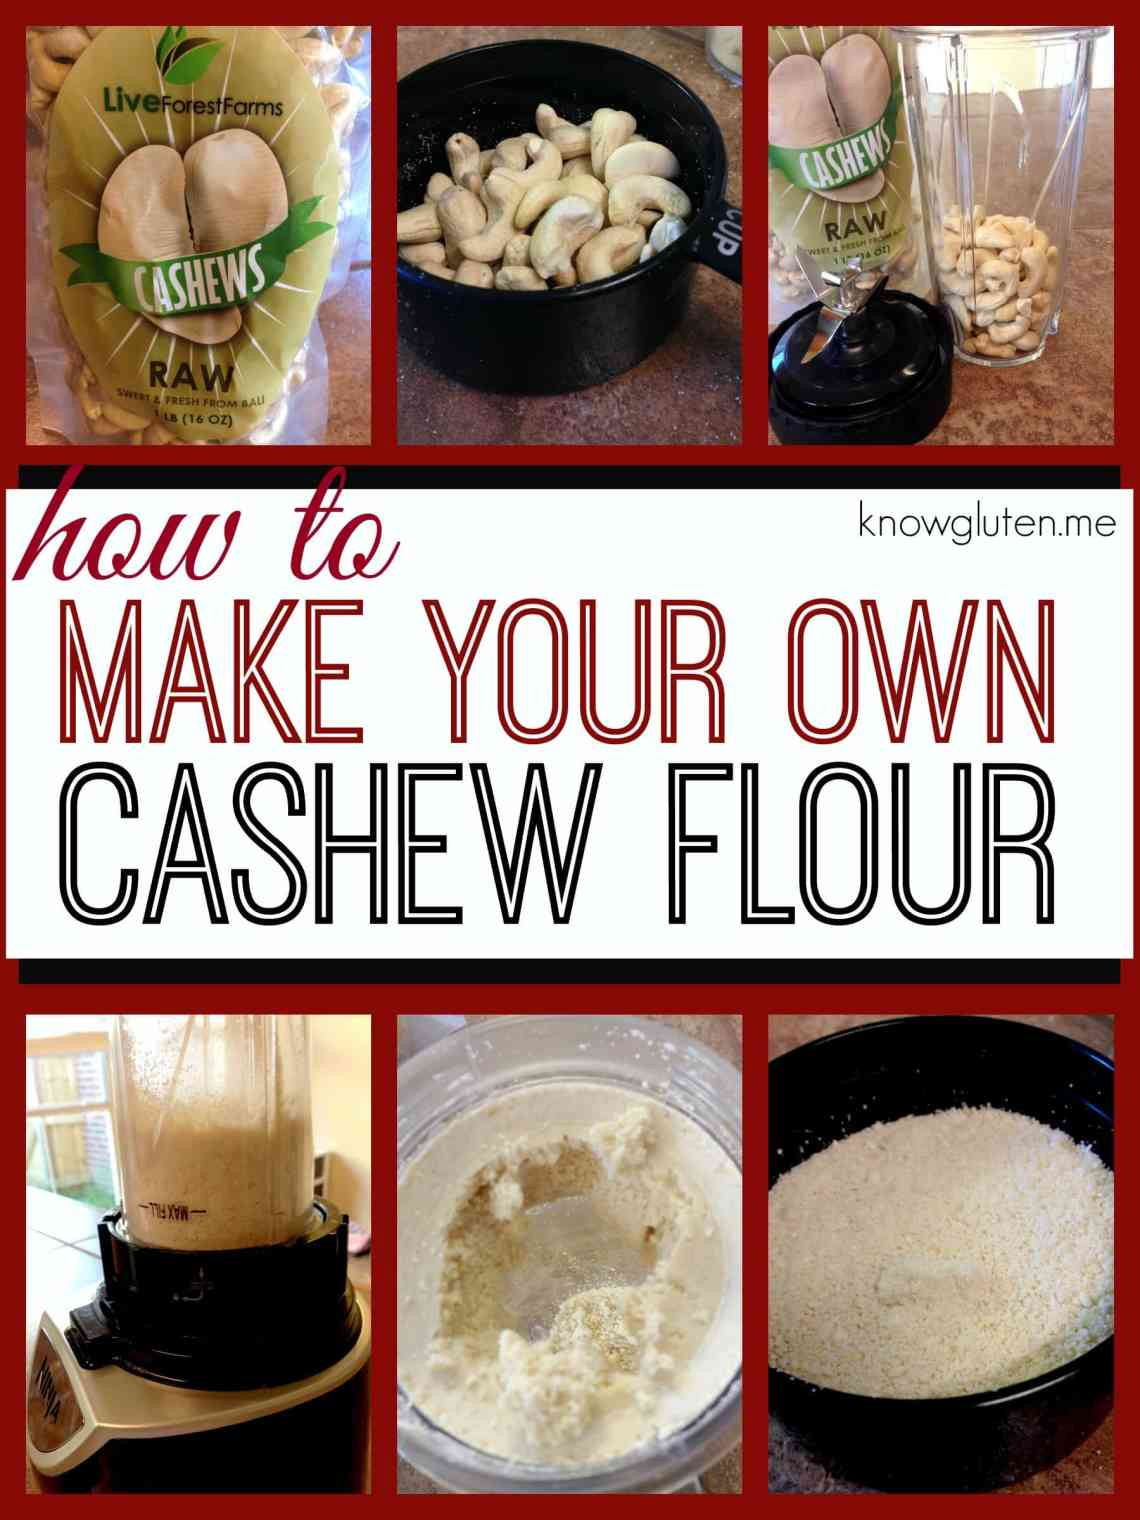 How to Make your own cashew flour - a step by step guide to making your own cashew meal for gluten free baking from knowgluten.me